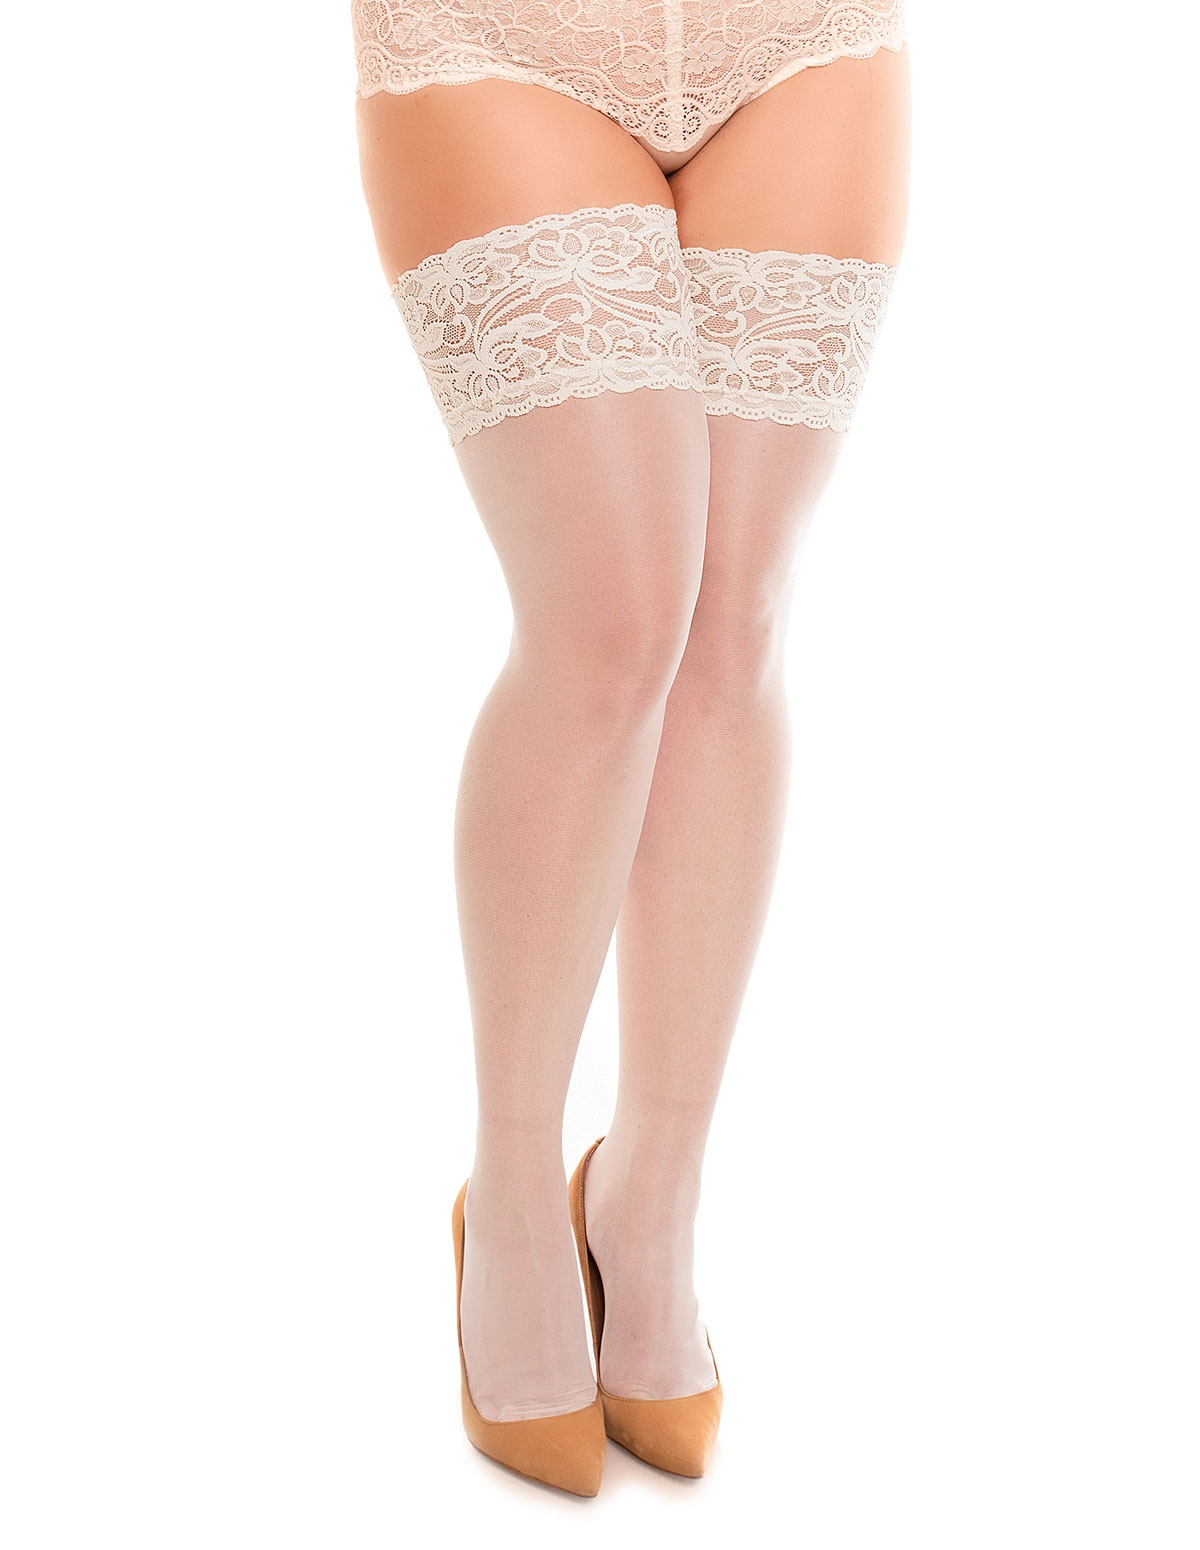 Luxury 20 Stockings - Plus